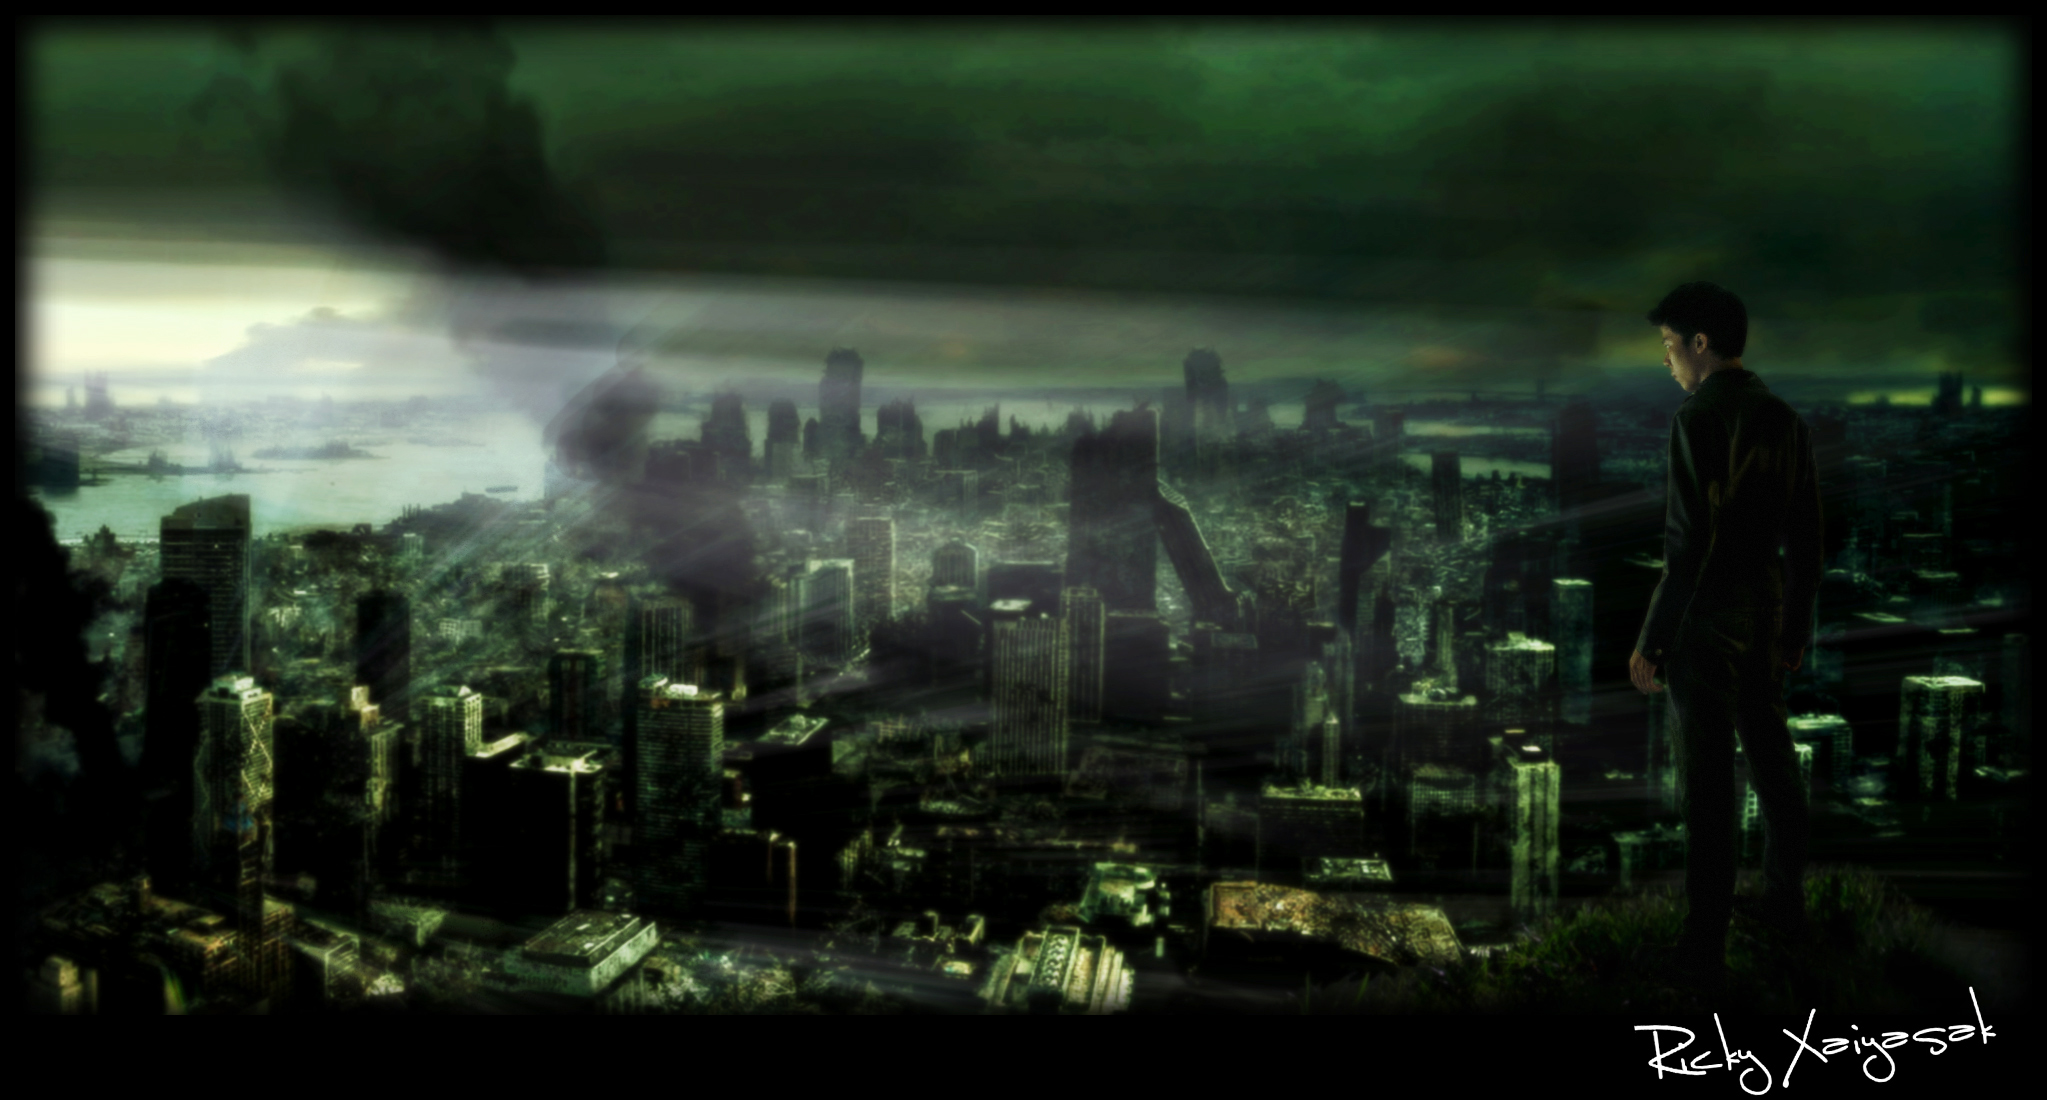 Destroyed City Wallpaper images 2047x1100